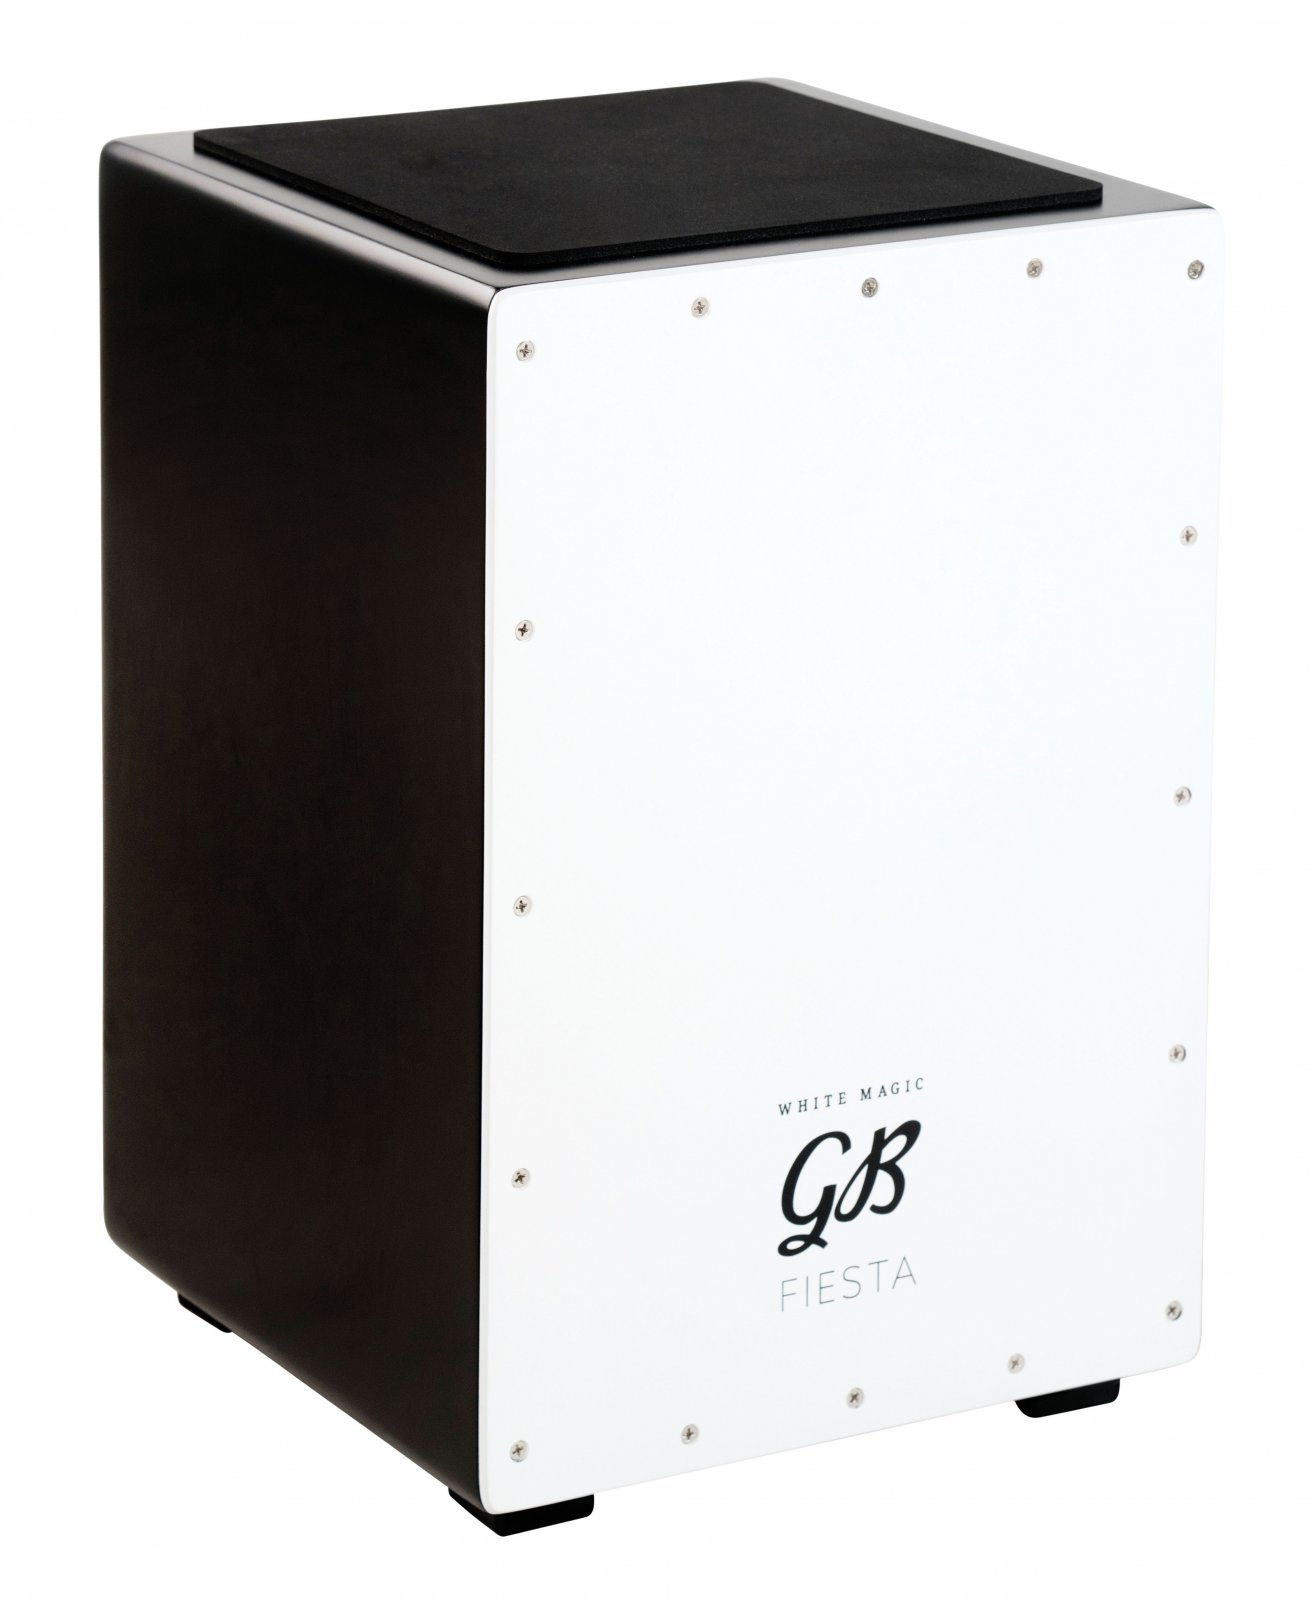 Fiesta White Magic Cajon